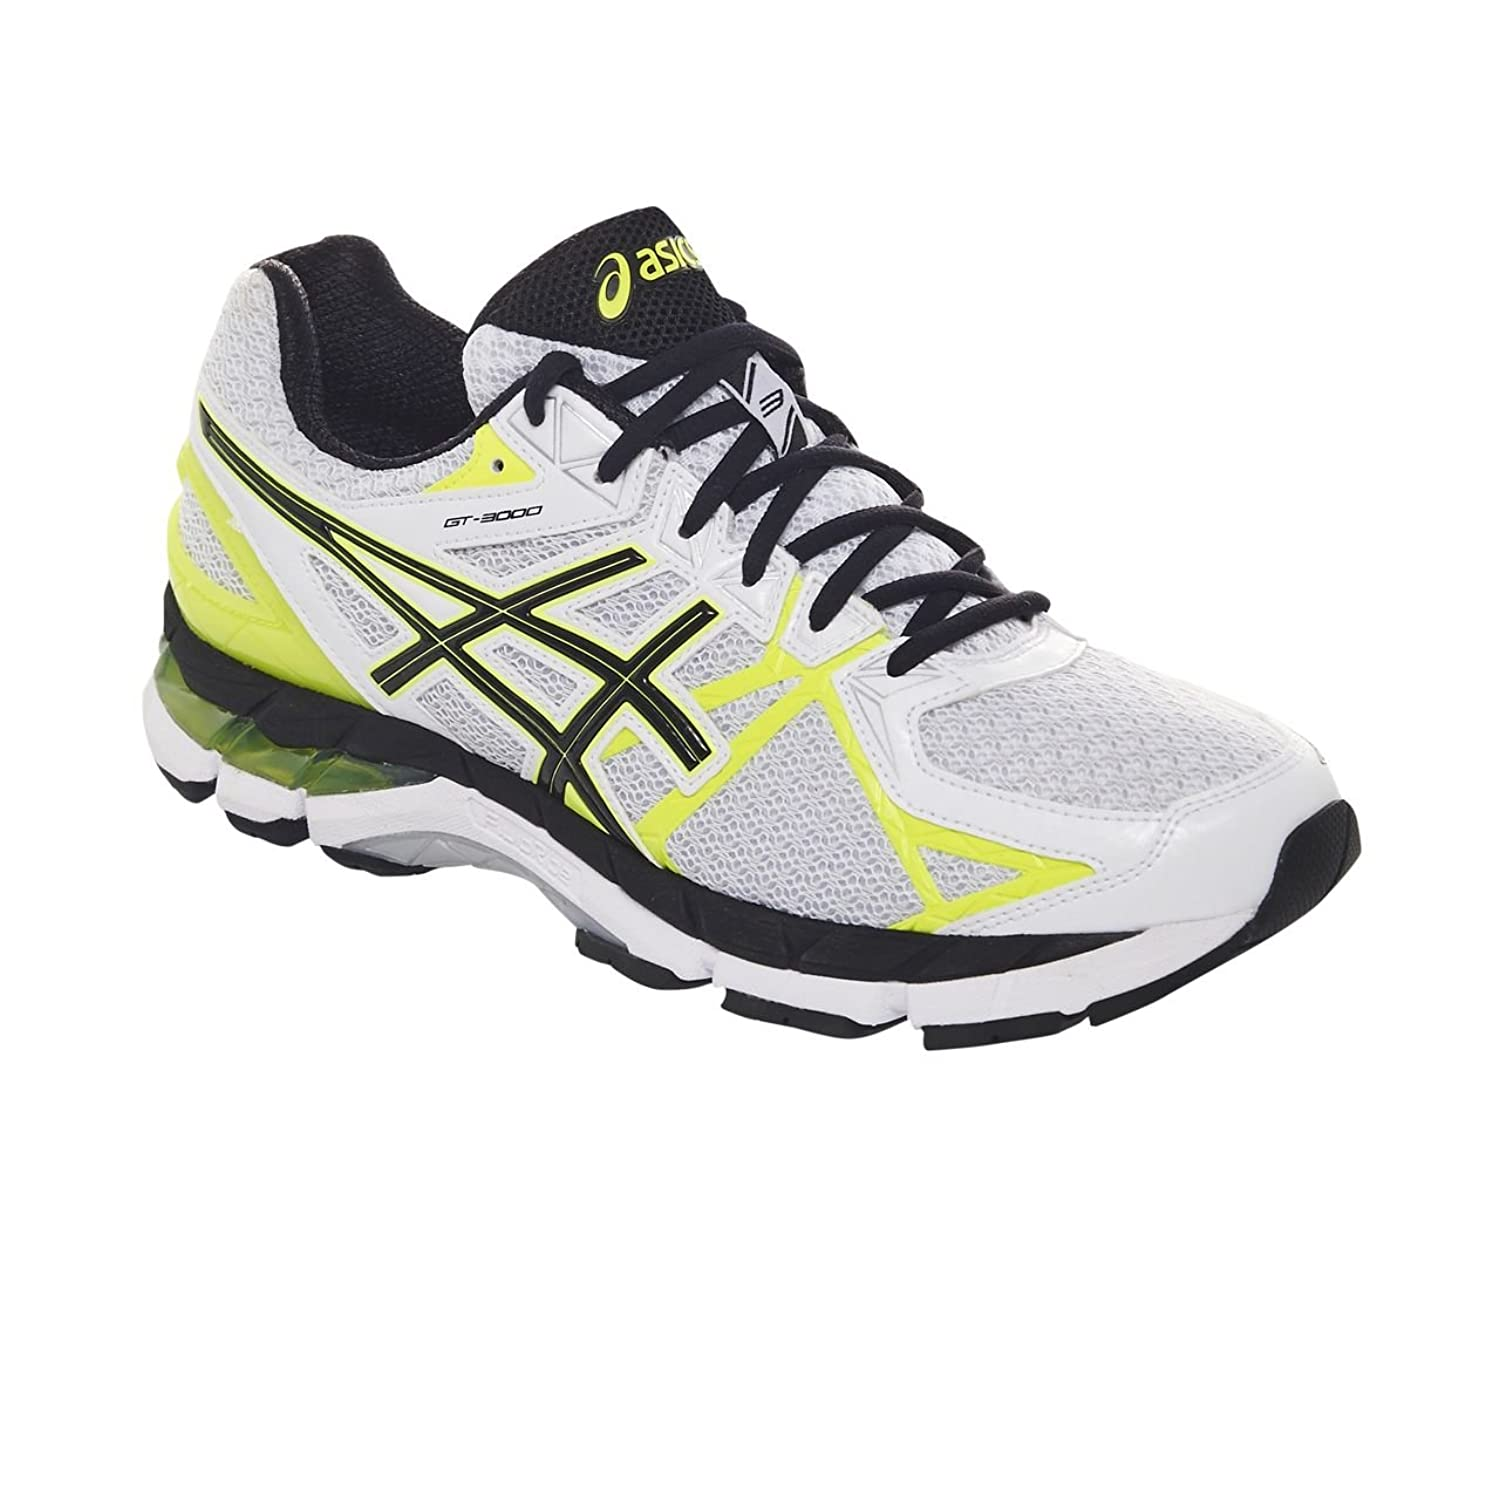 ASICS Men's Gt-3000 3 White, Black and Flash Yellow Mesh Running Shoes - 5  UK: Buy Online at Low Prices in India - Amazon.in